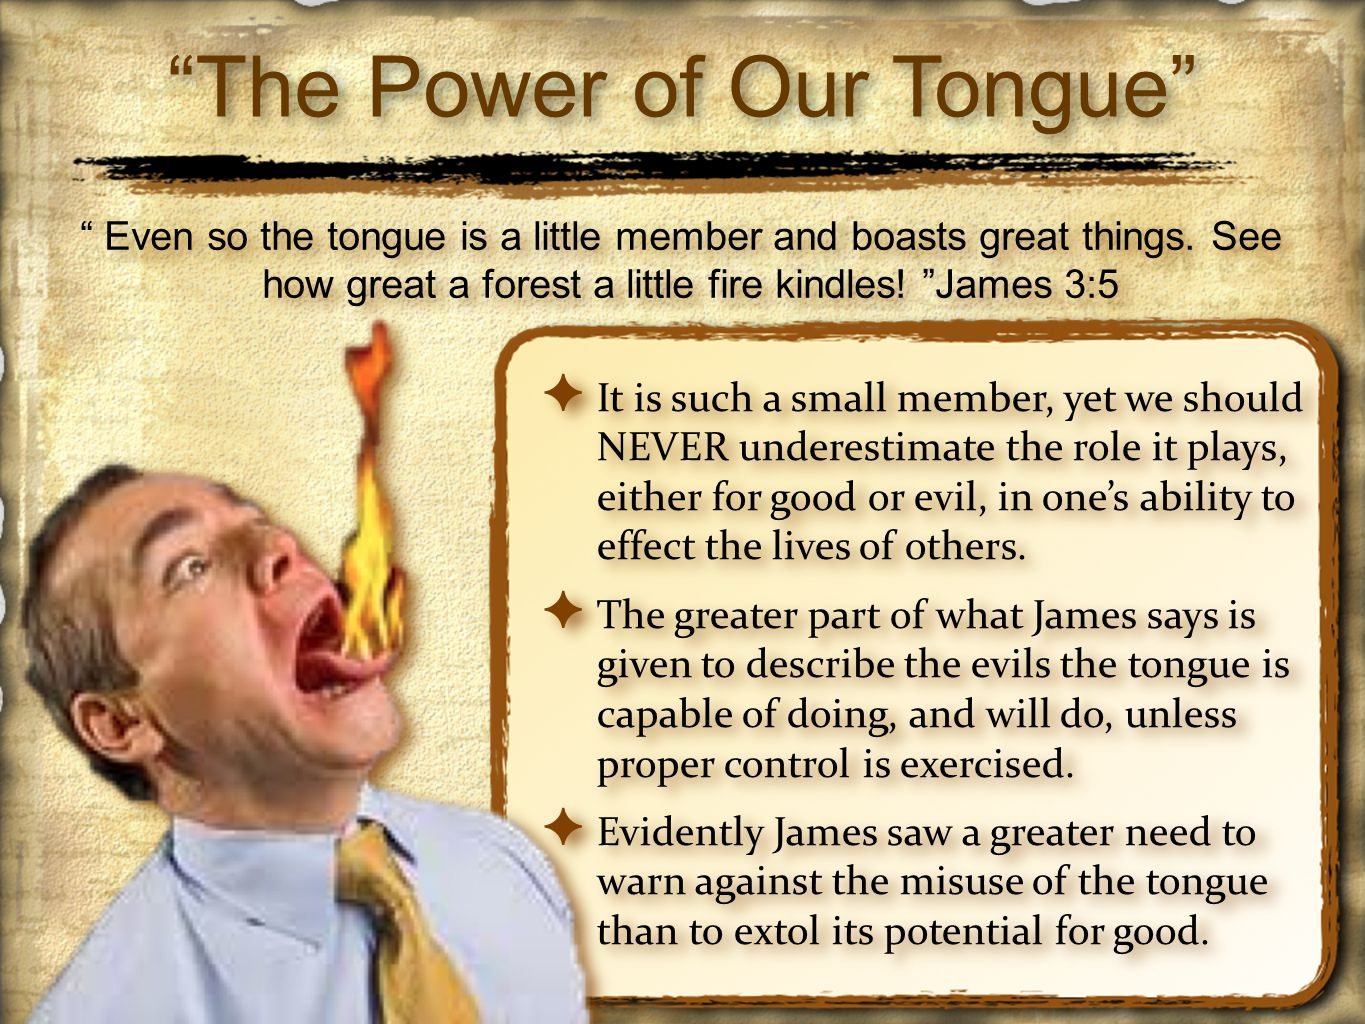 The Power of Our Tongue